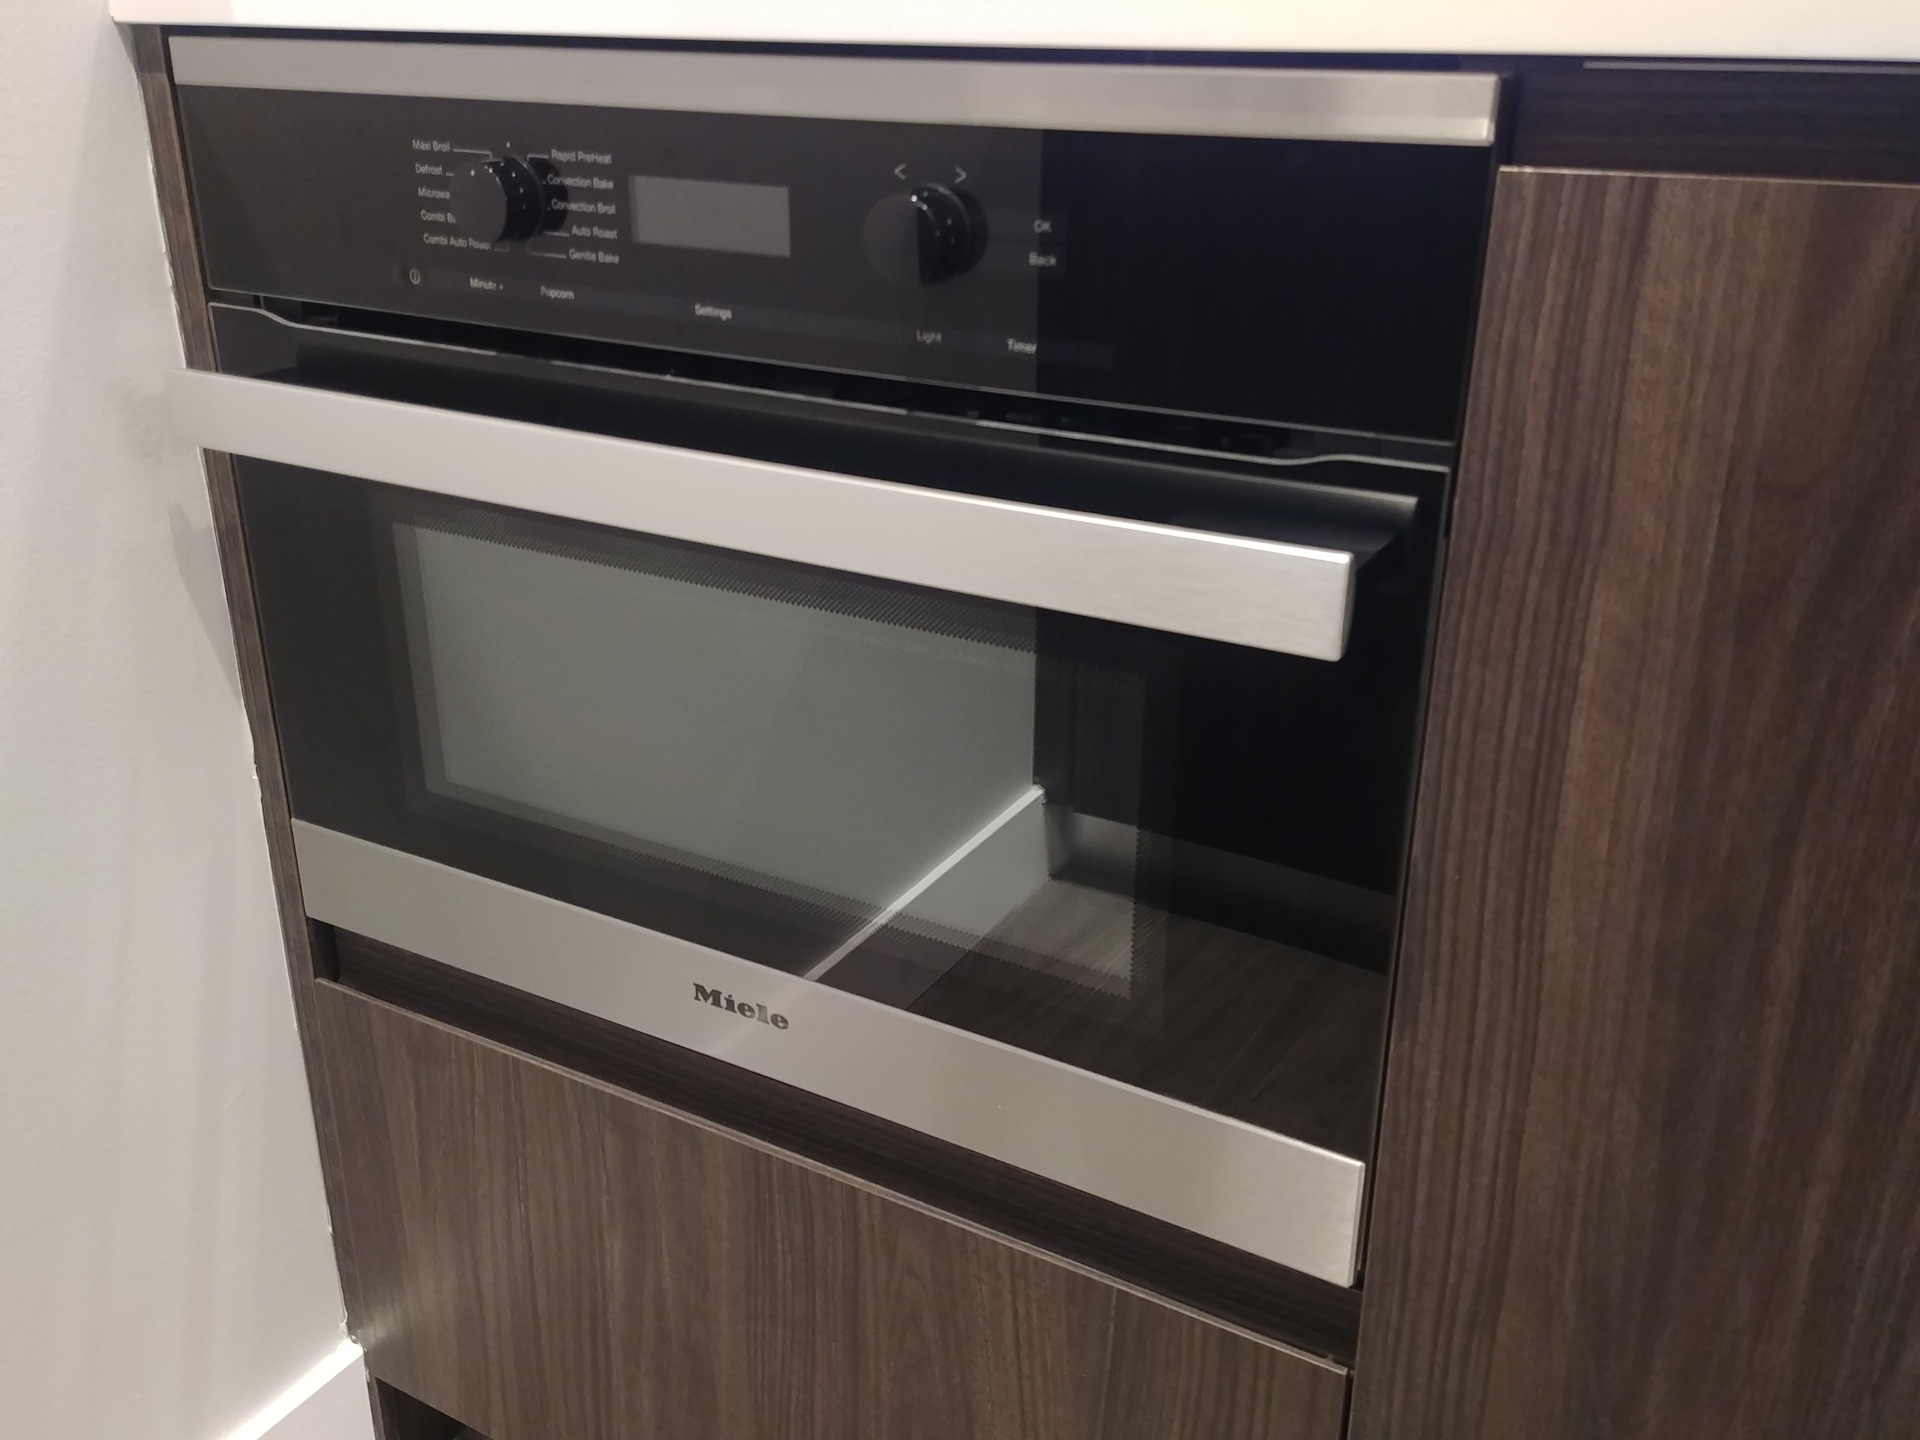 highline-miele-speed-oven at Highline (6811 Sussex Street, Metrotown, Burnaby South)